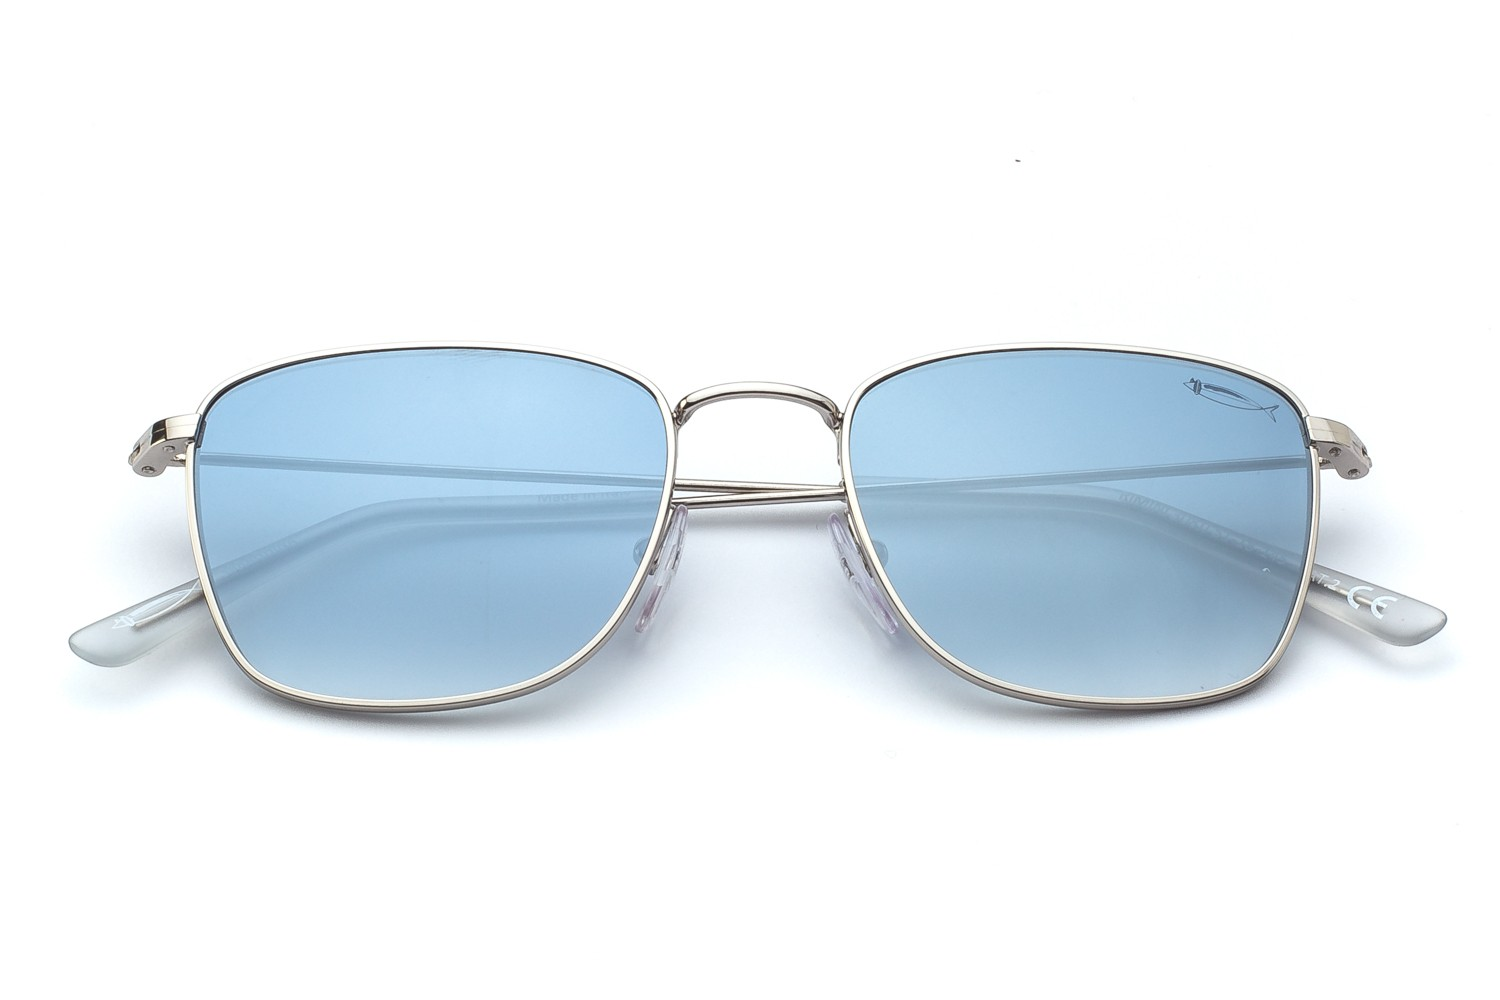 Havana - Gray Shaded Lenses